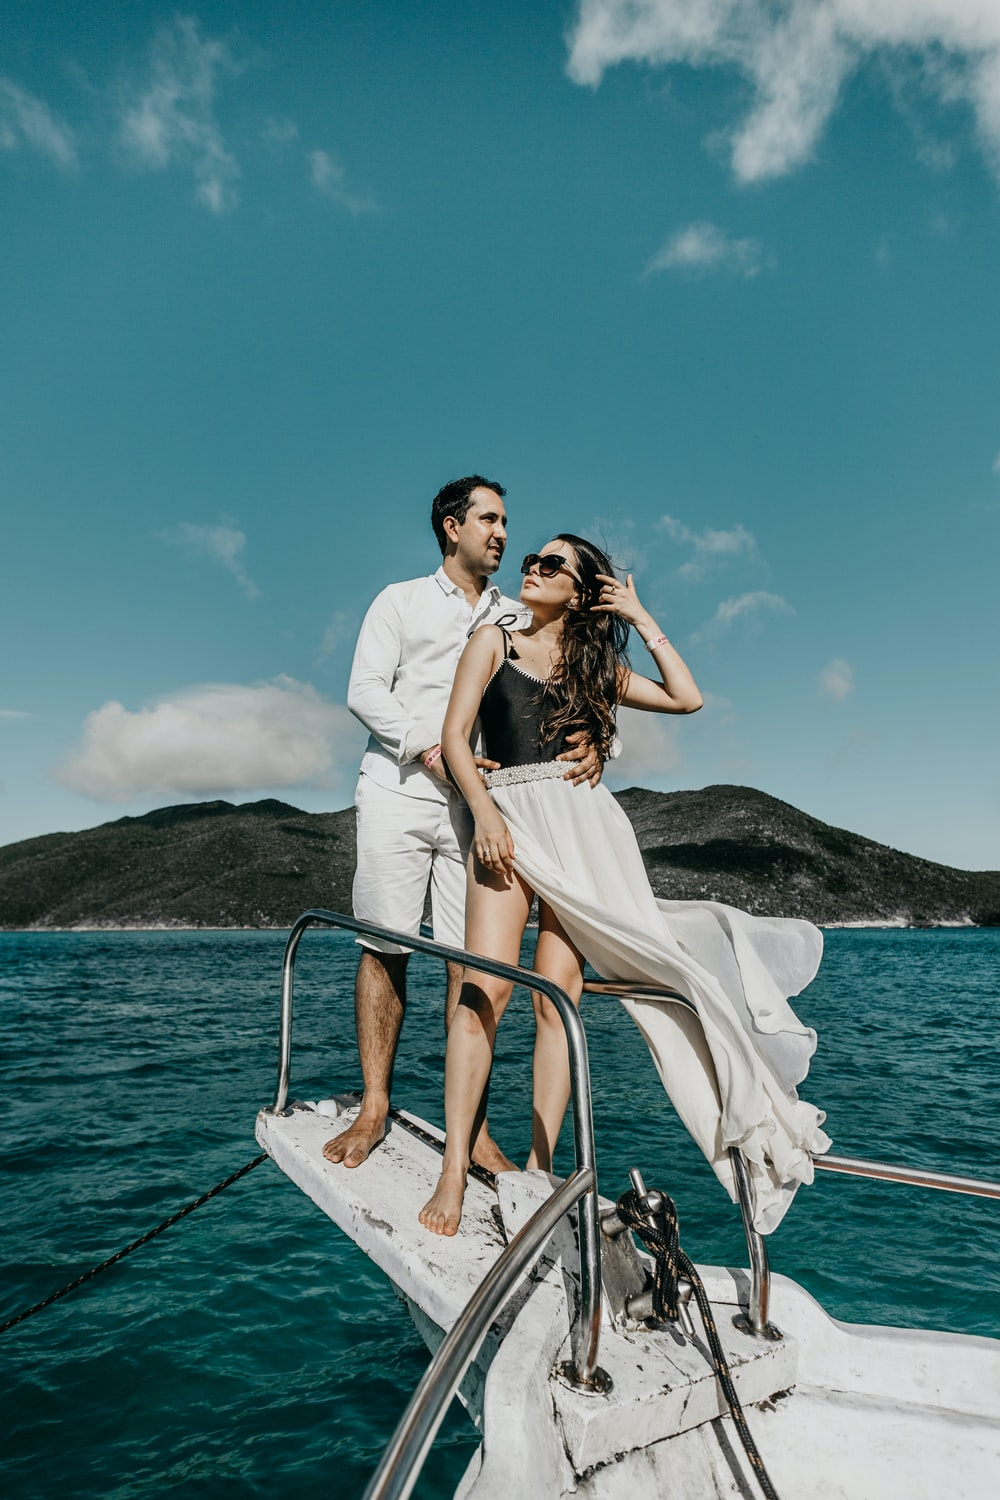 woman in white dress standing on boat during daytime